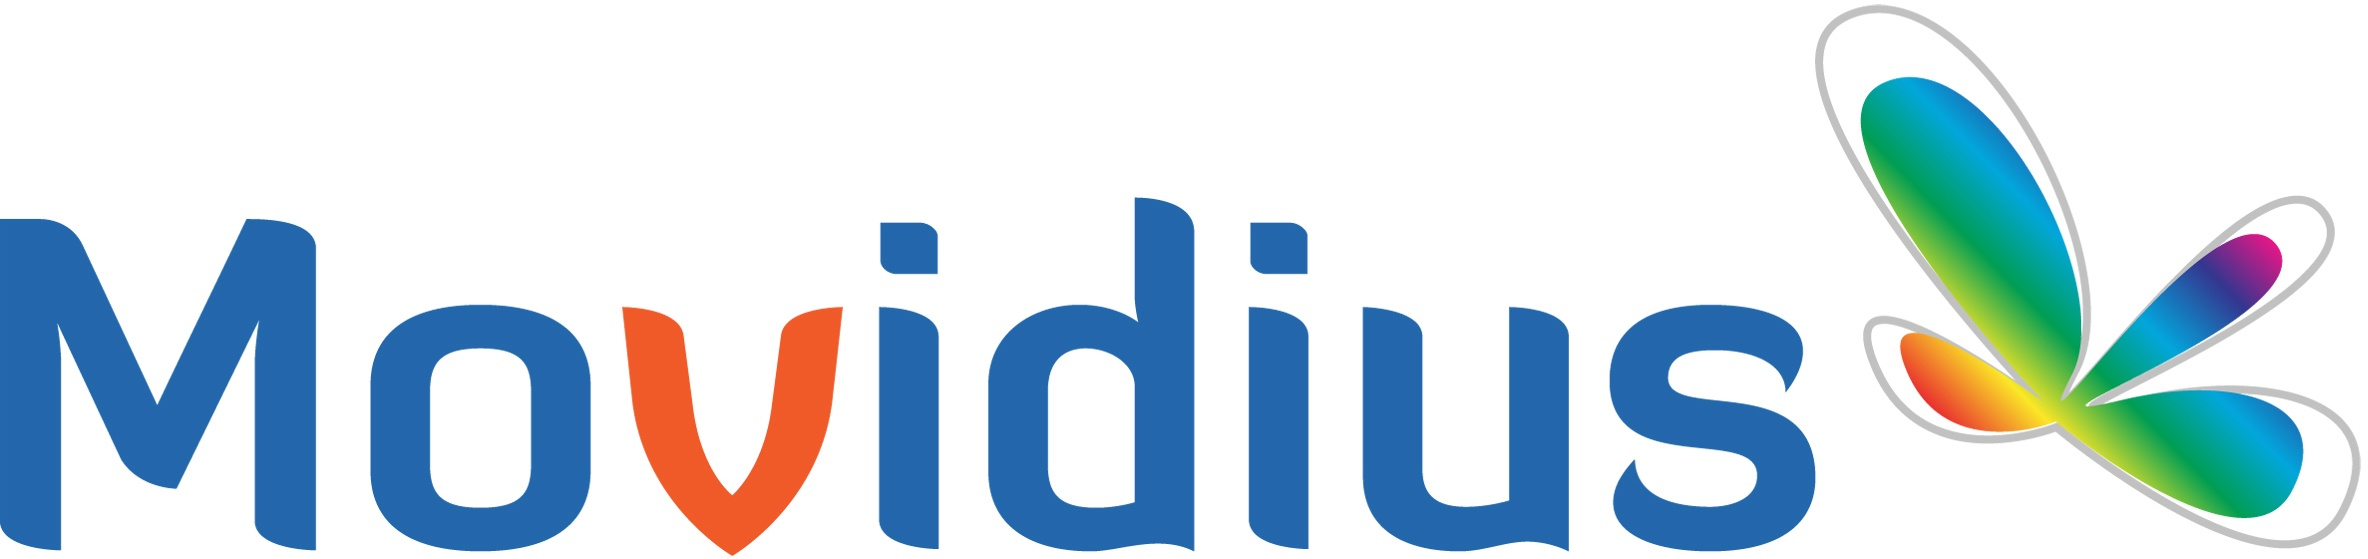 Arteris FlexNoC Interconnect IP is Licensed by Movidius for Ultra-Low Power Machine Learning and Vision Processing